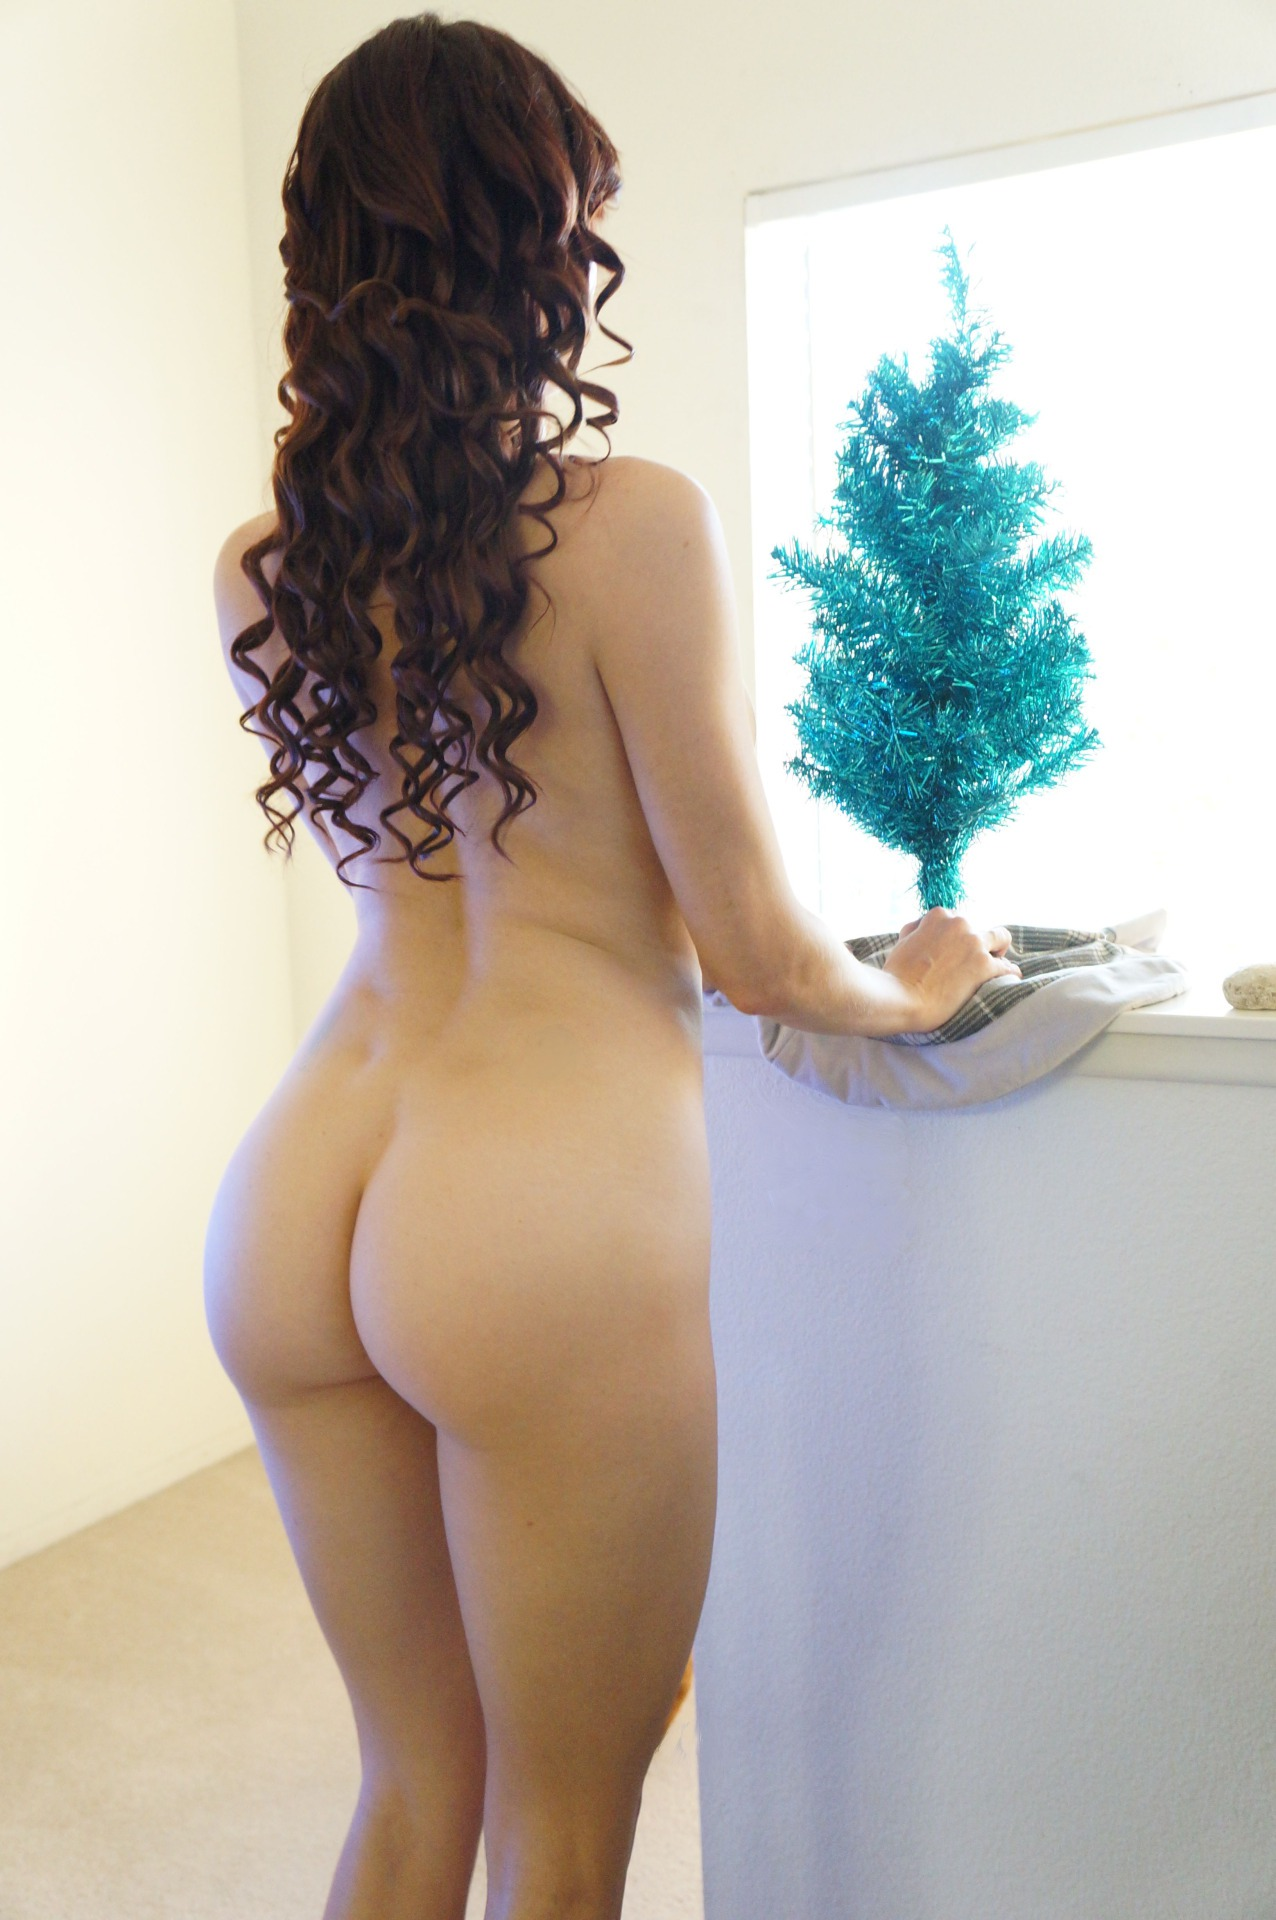 creampie anal hottest sex videos search watch and rate